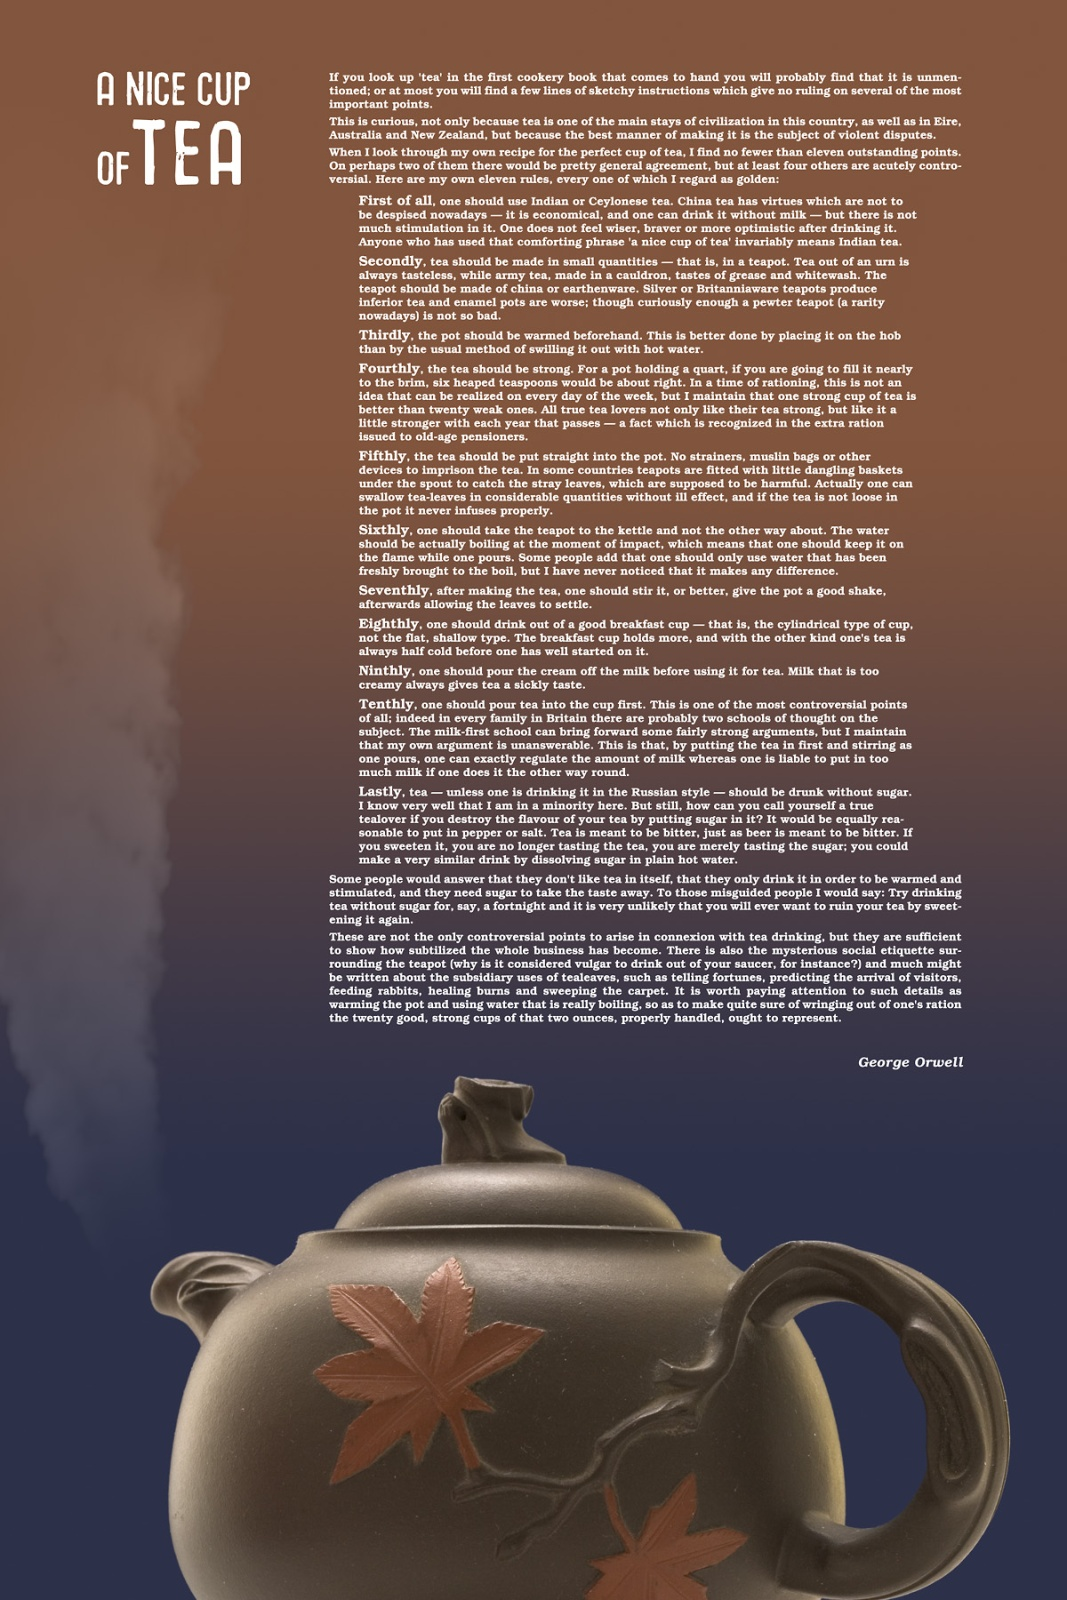 Tea george orwell essay